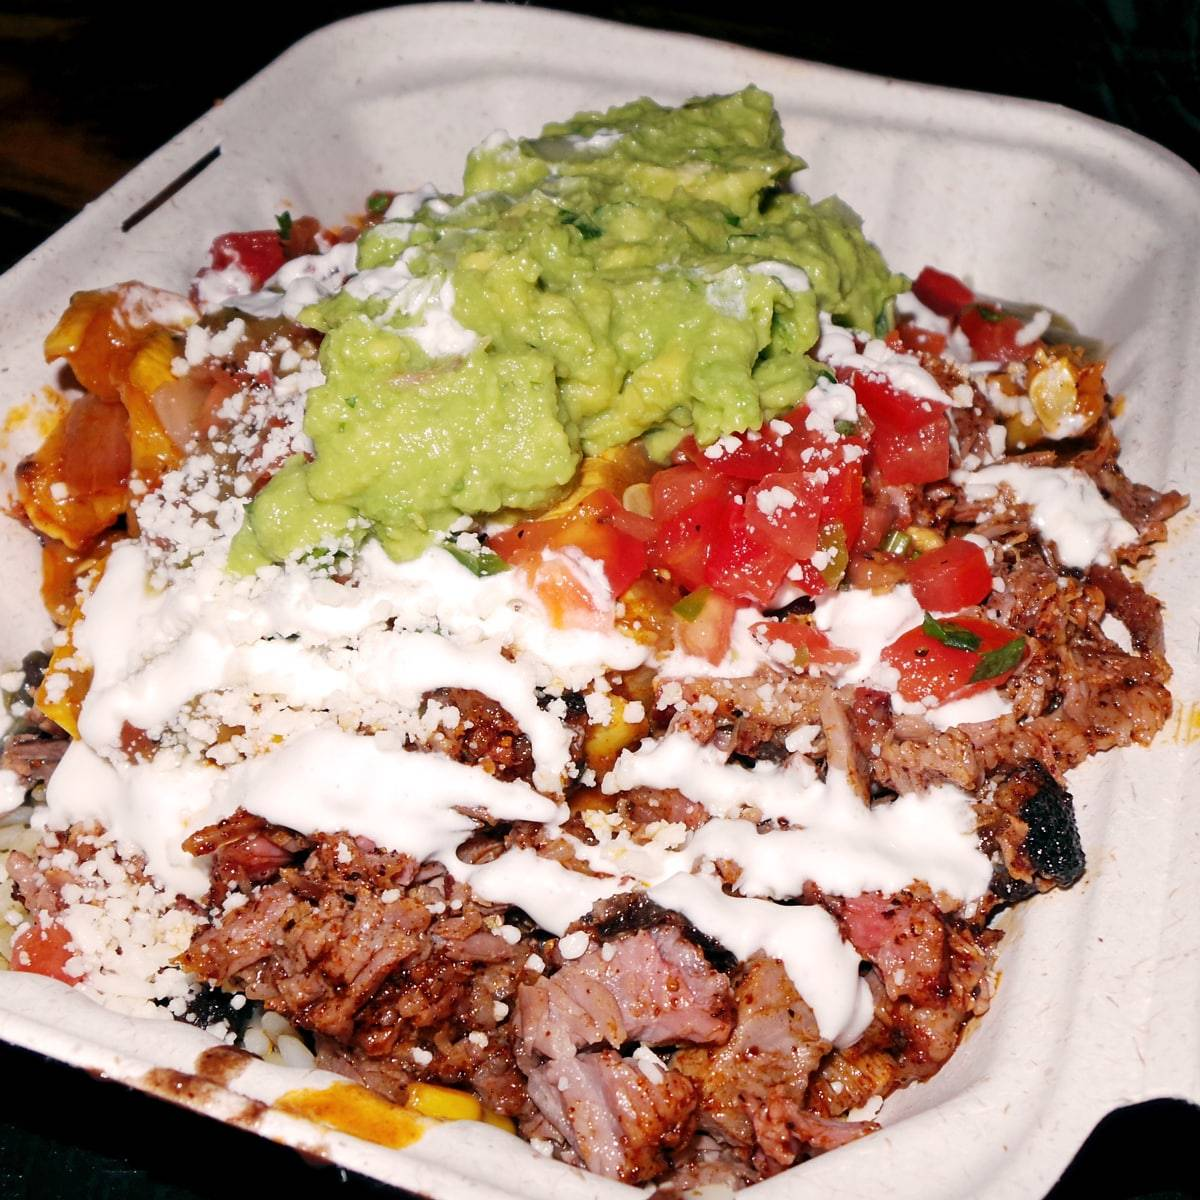 Real Deal Texas Barbecue Burrito Bowls in NYC at Tres Carnes